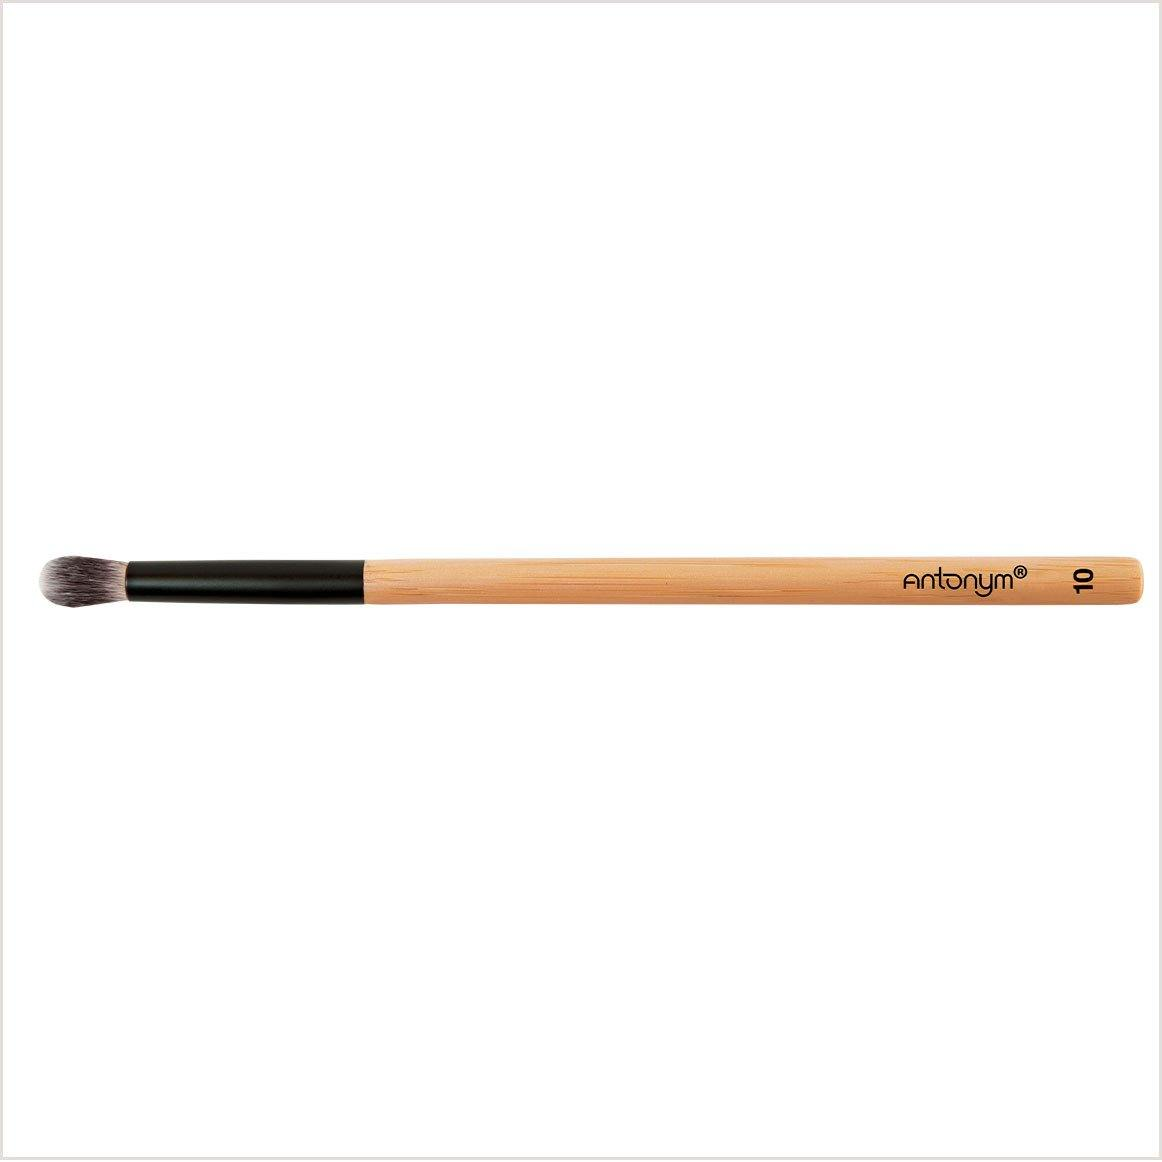 Blending Brush #10 - Antonym Cosmetics